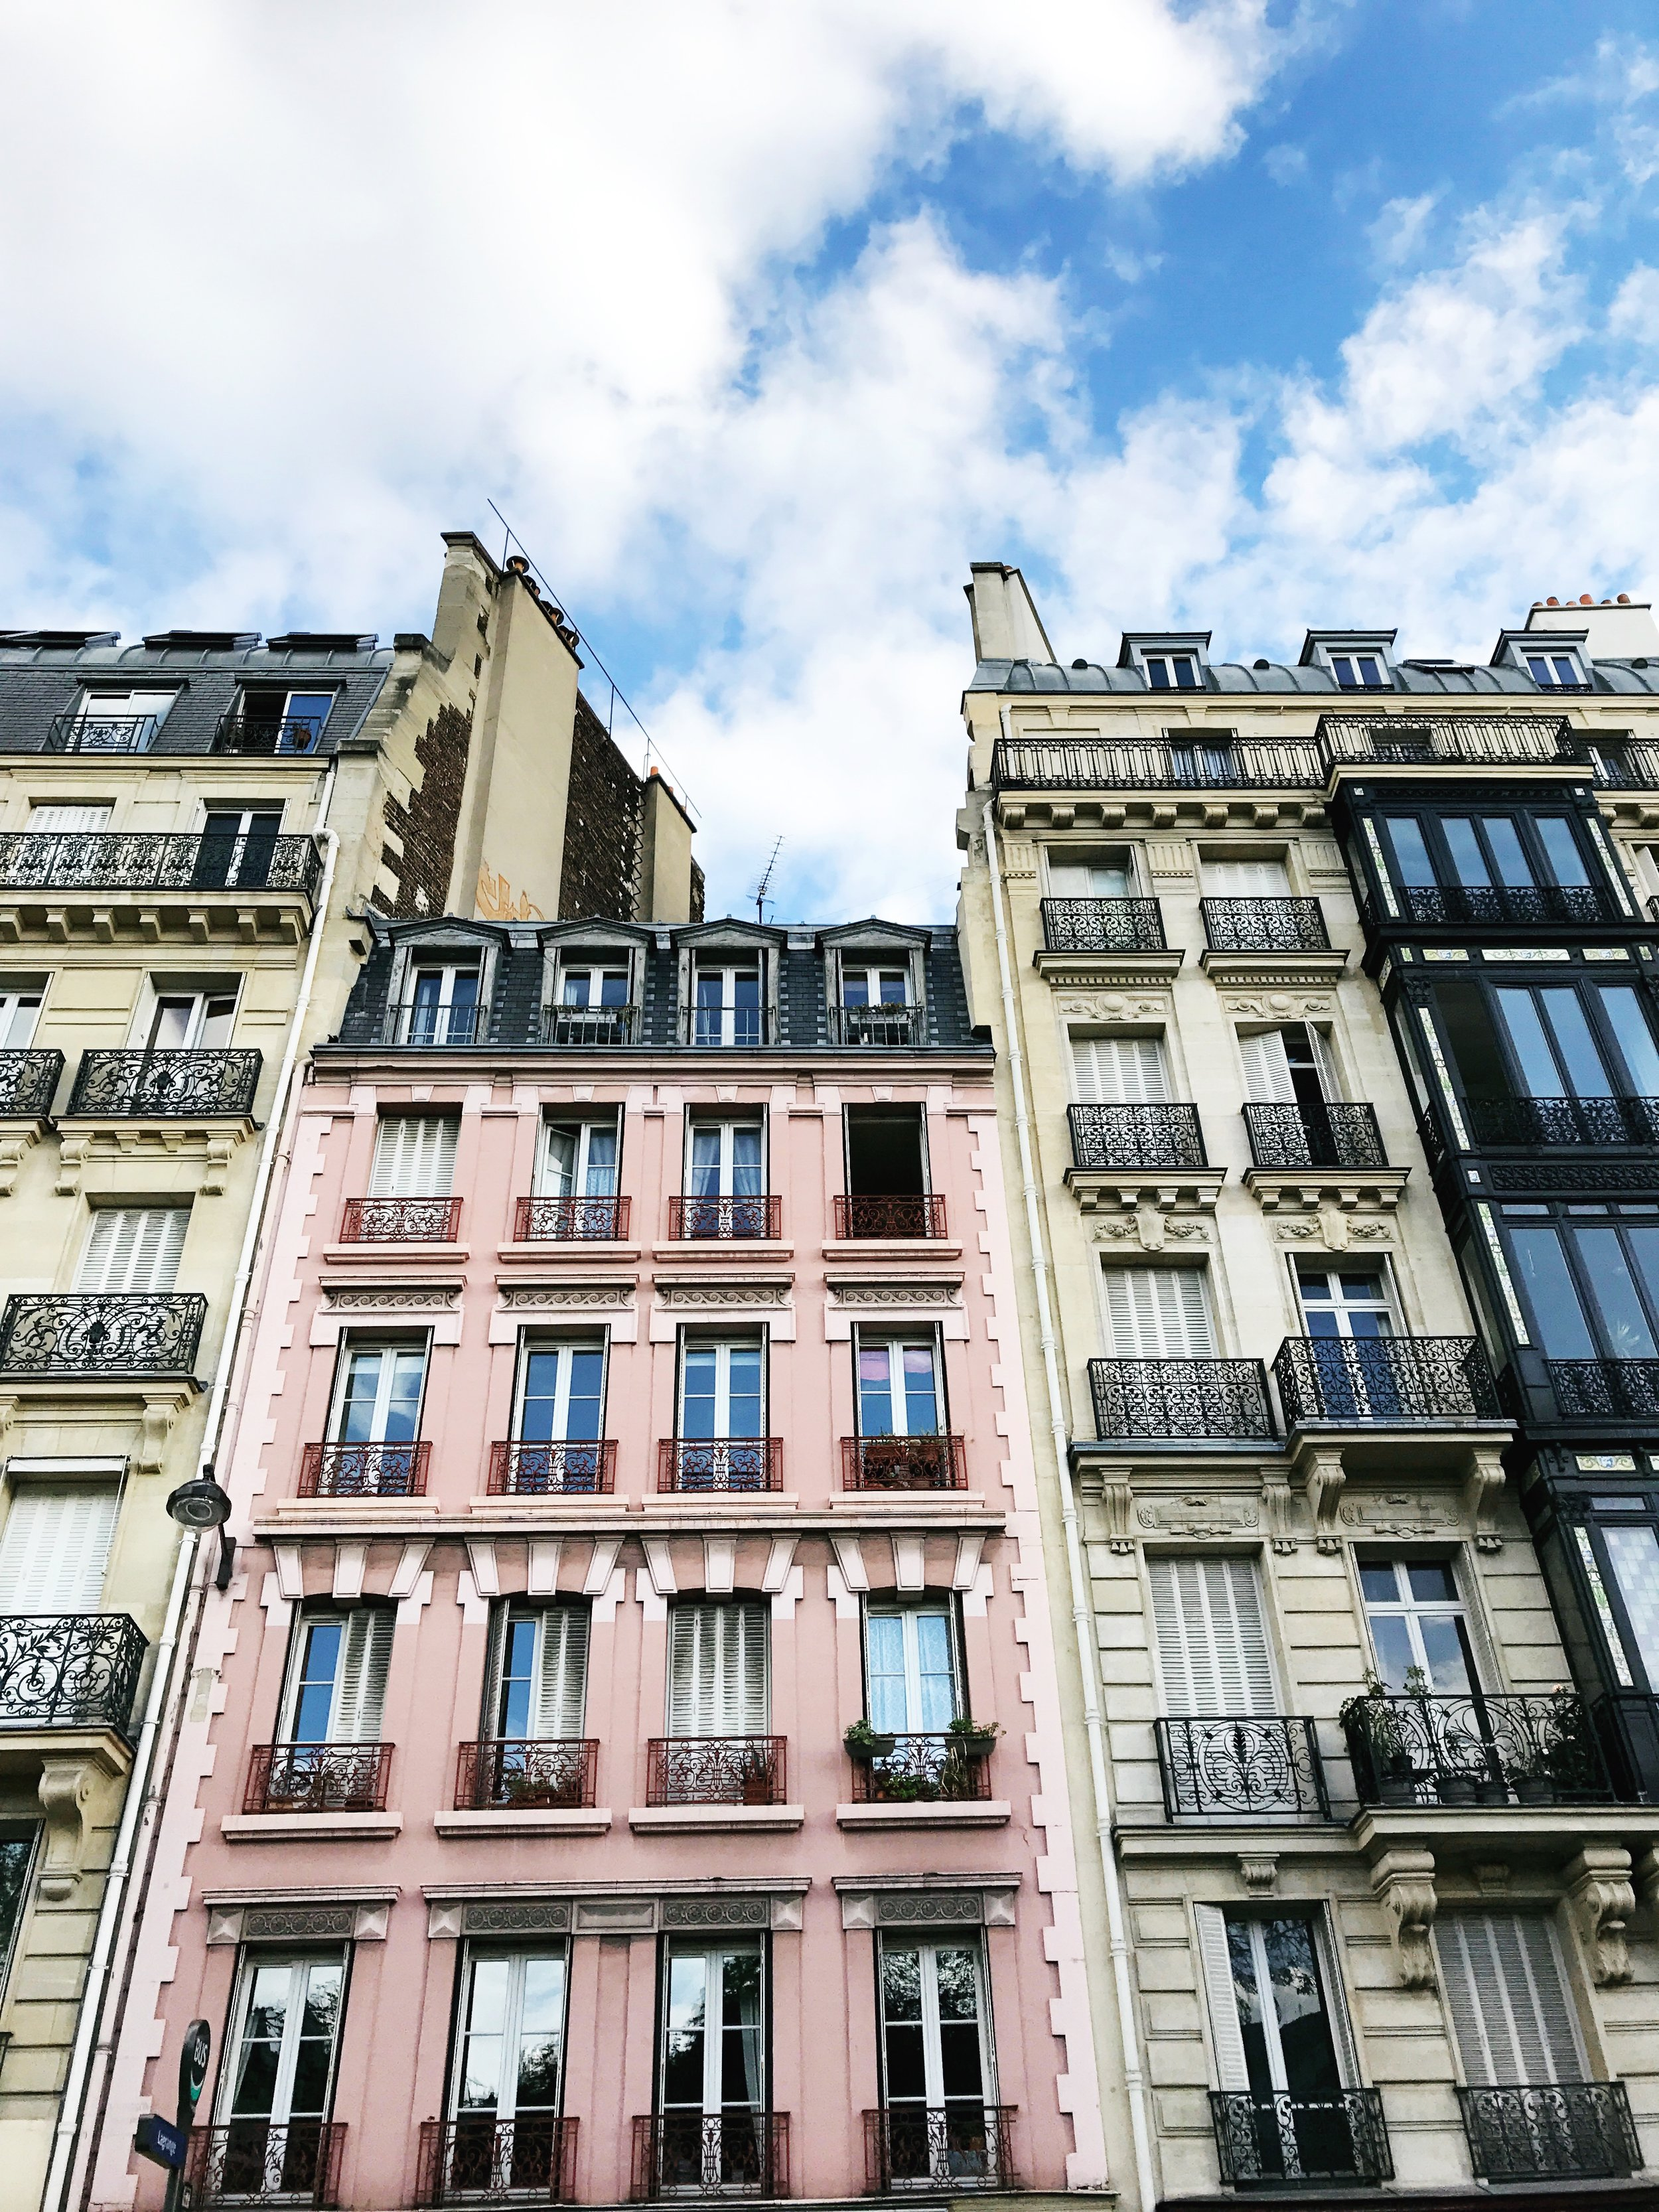 Picture Perfect Paris - A city made for the human experience